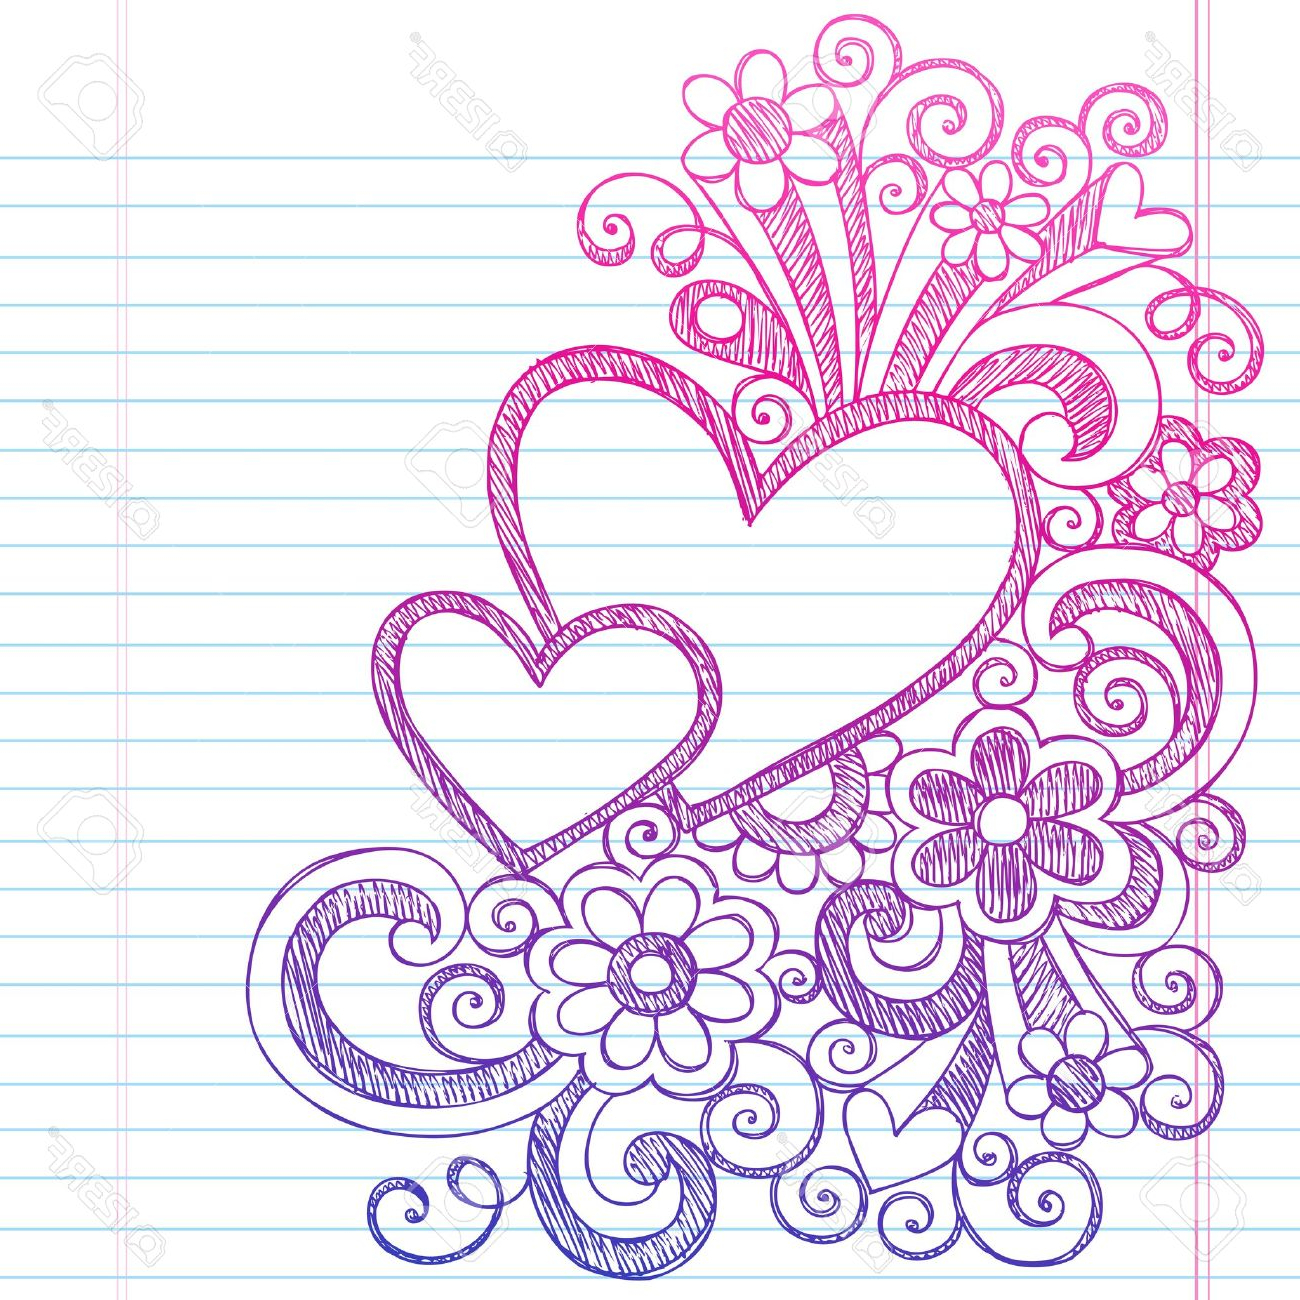 1300x1300 Border Design With Flower In Sketch Pencil Drawings Of Designs